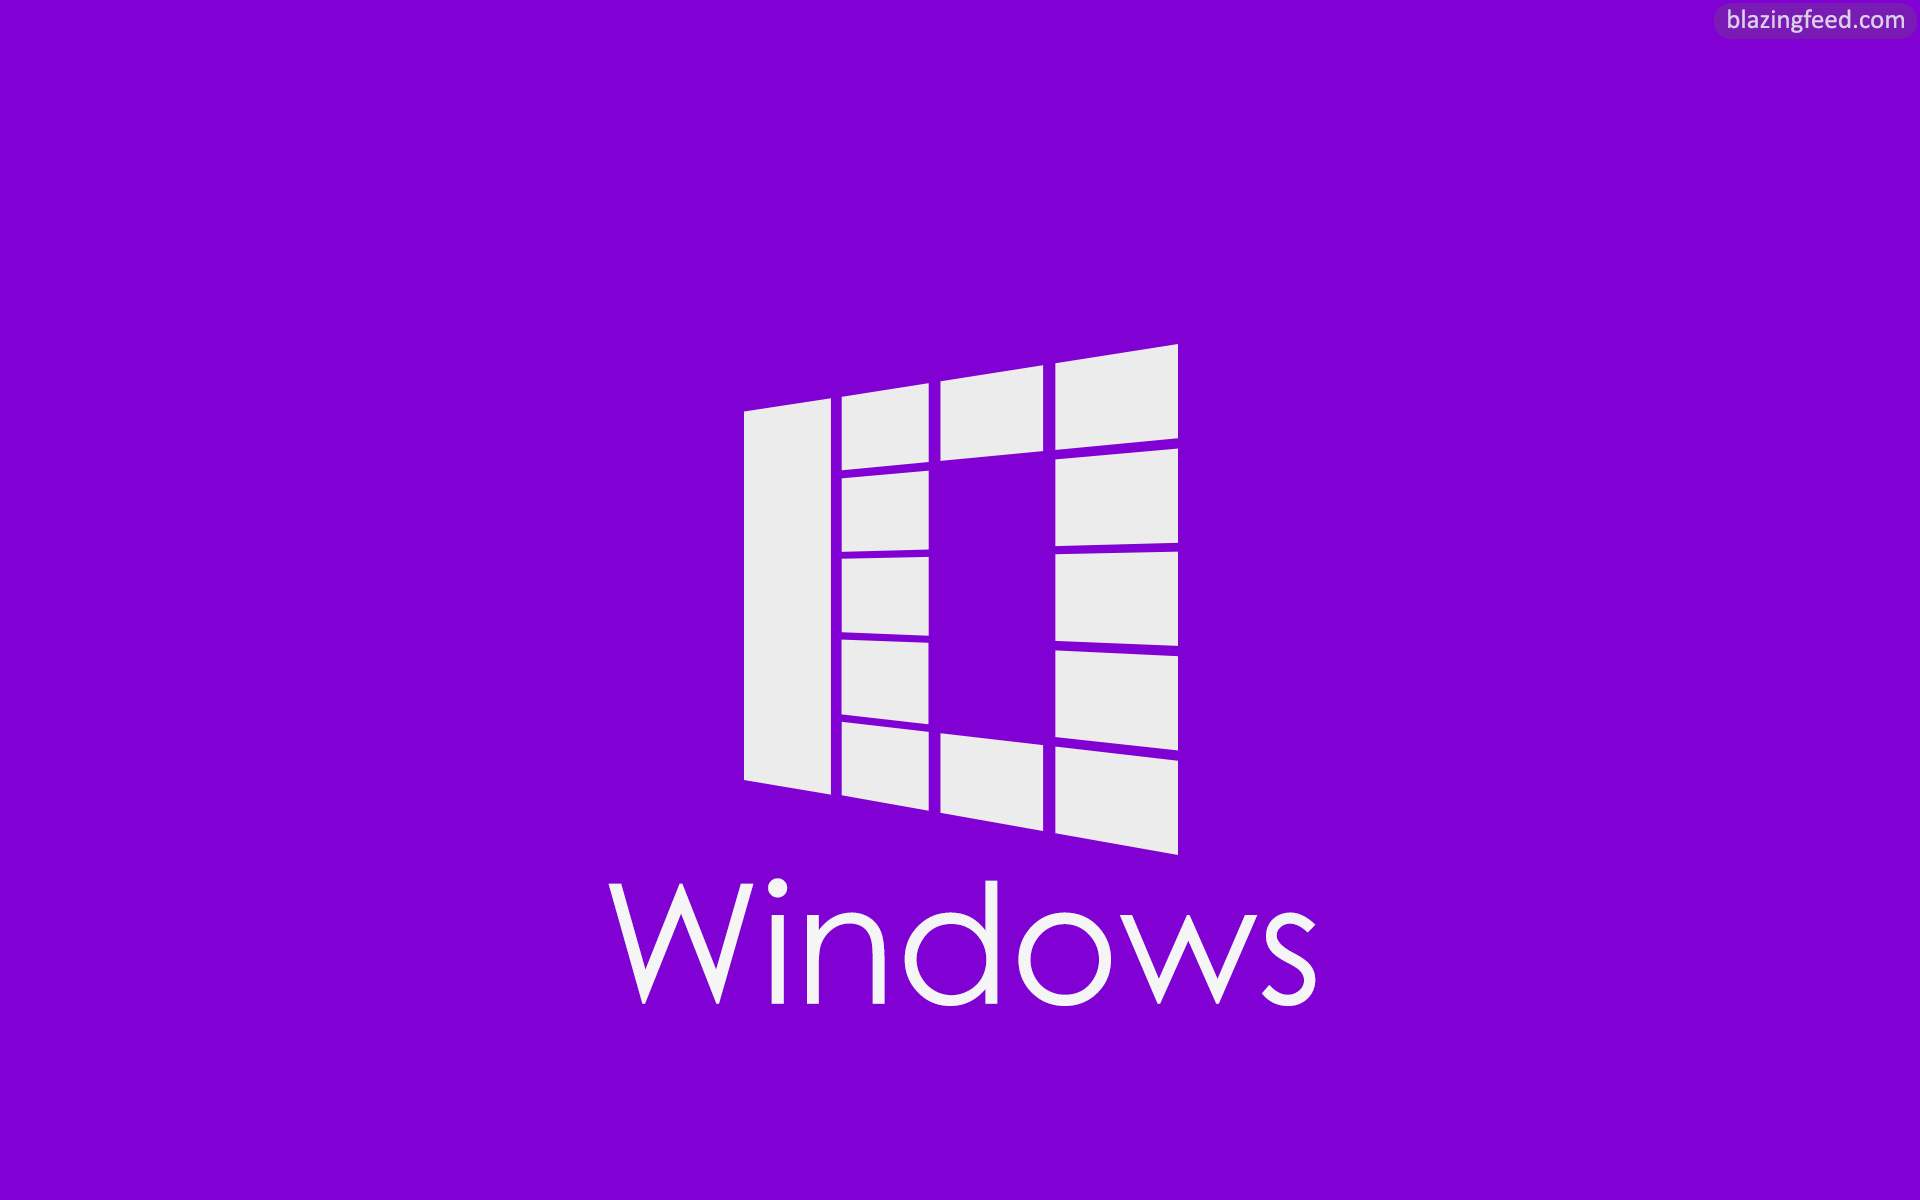 windows logo wallpapers wallpapersafari